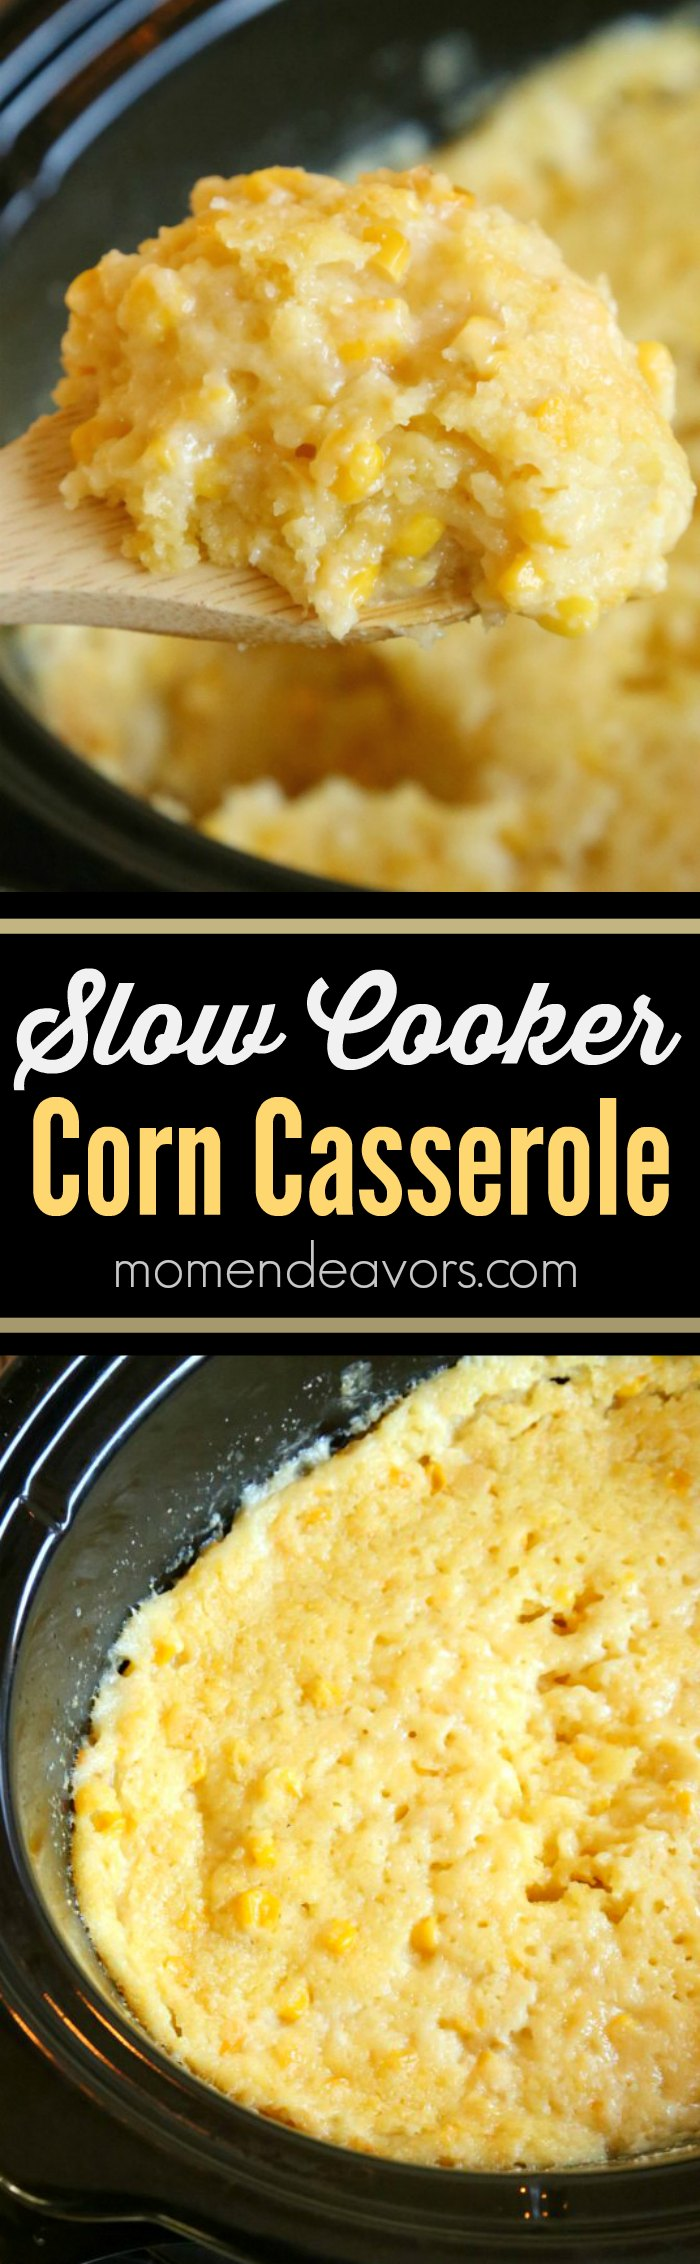 Chicken Casserole Recipe. Here is a pro tip on this chicken and corn casserole recipe: The NIGHT before, place all the ingredients in the slow cooker bowl, cover, and store in the refrigerator.